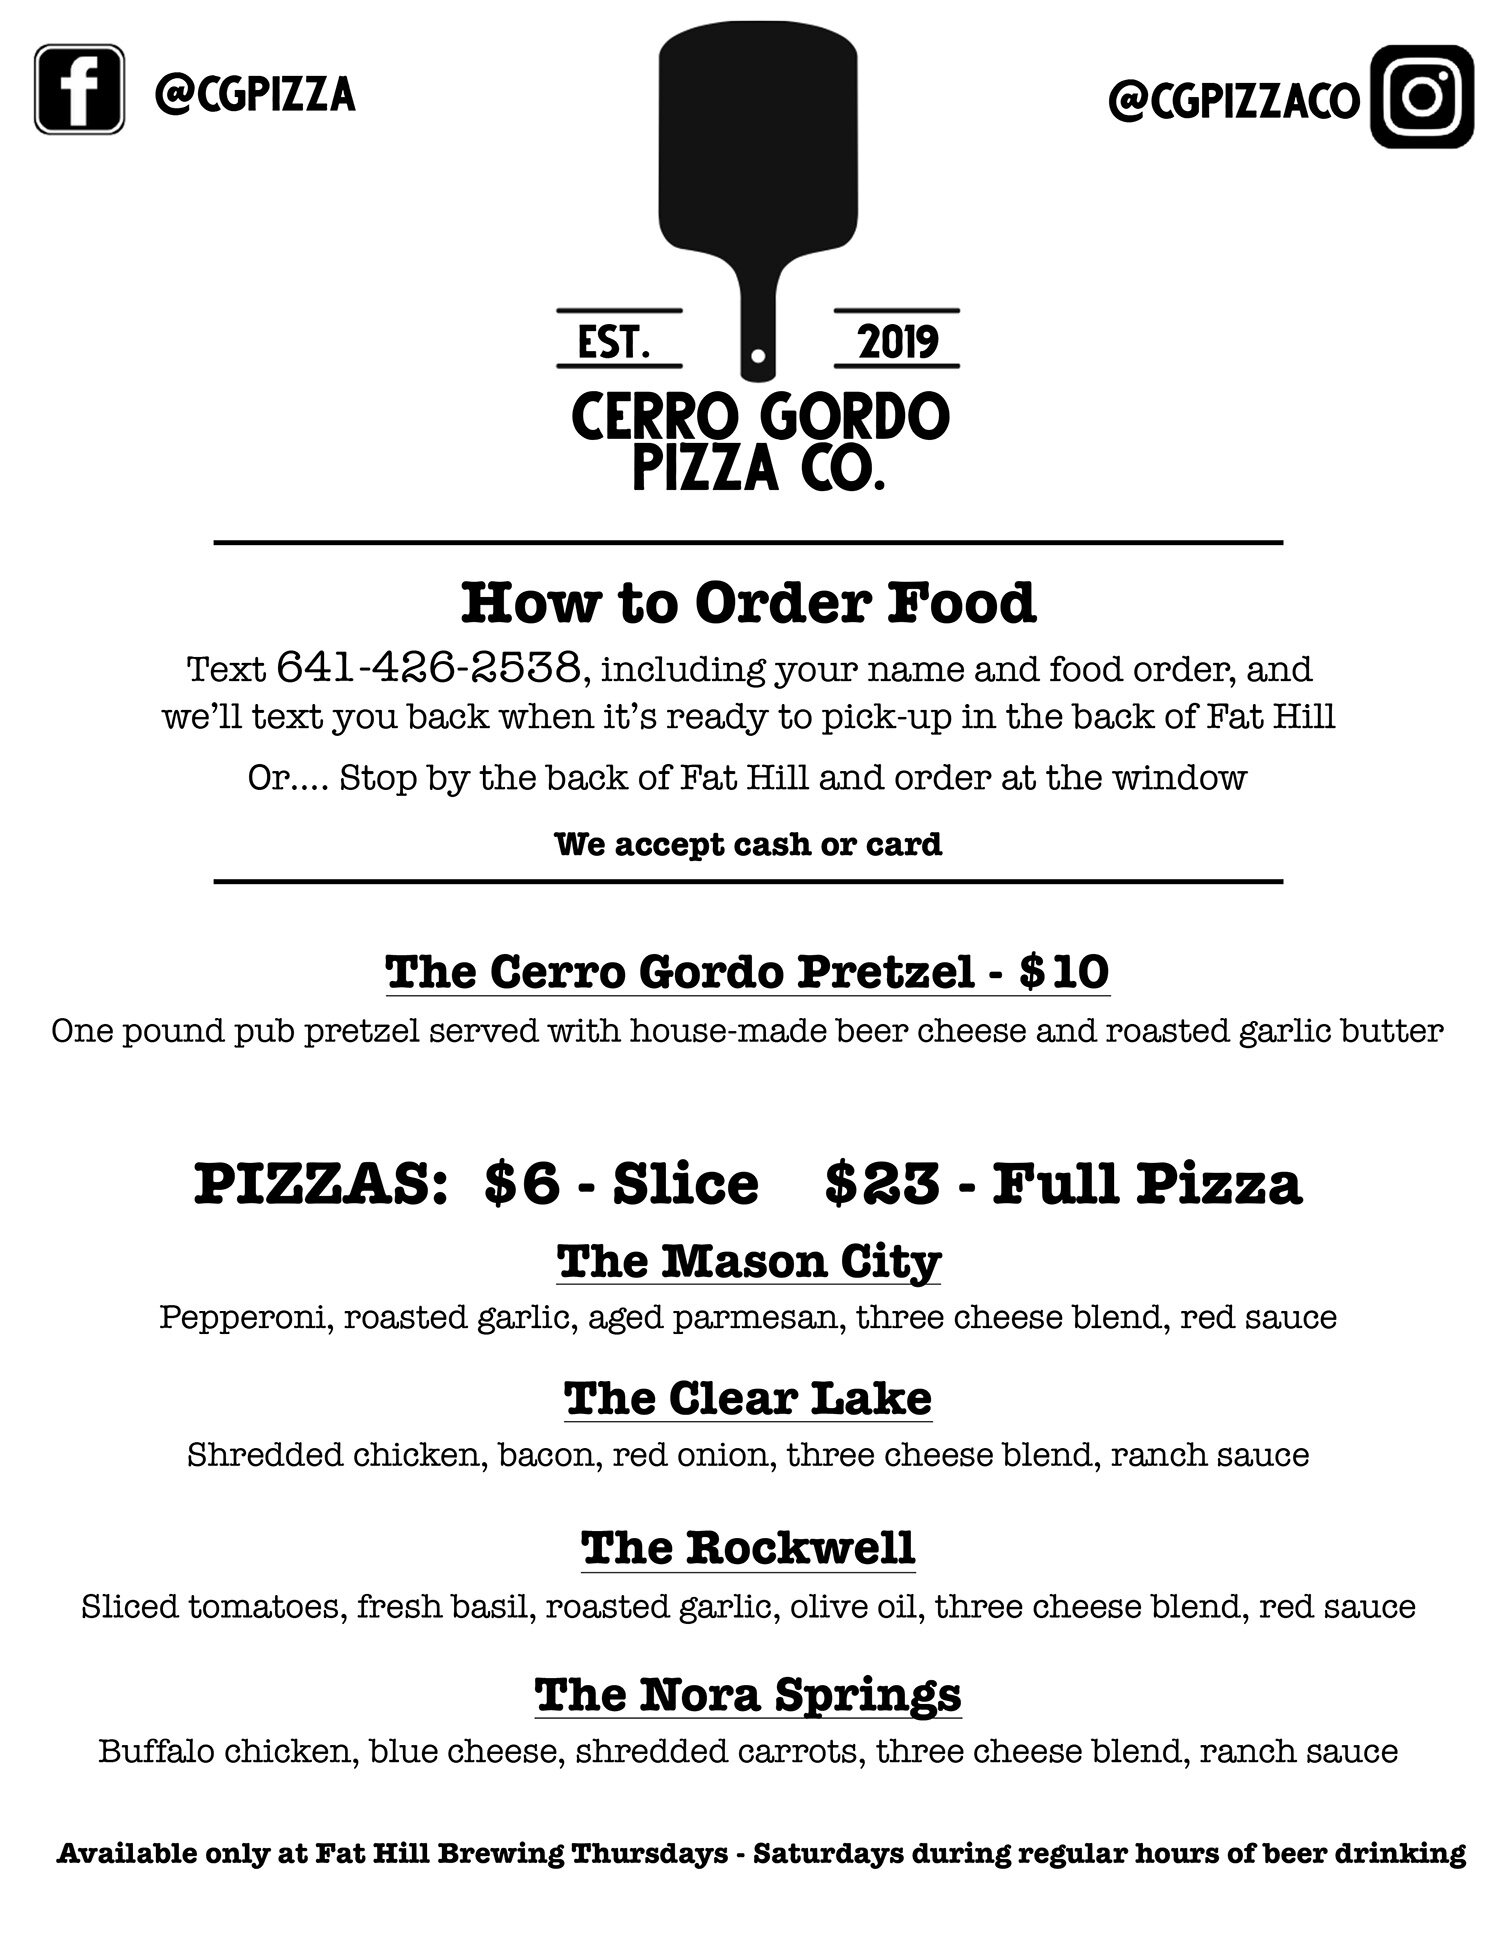 Cerro Gordo Pizza Company Menu Updated.jpg